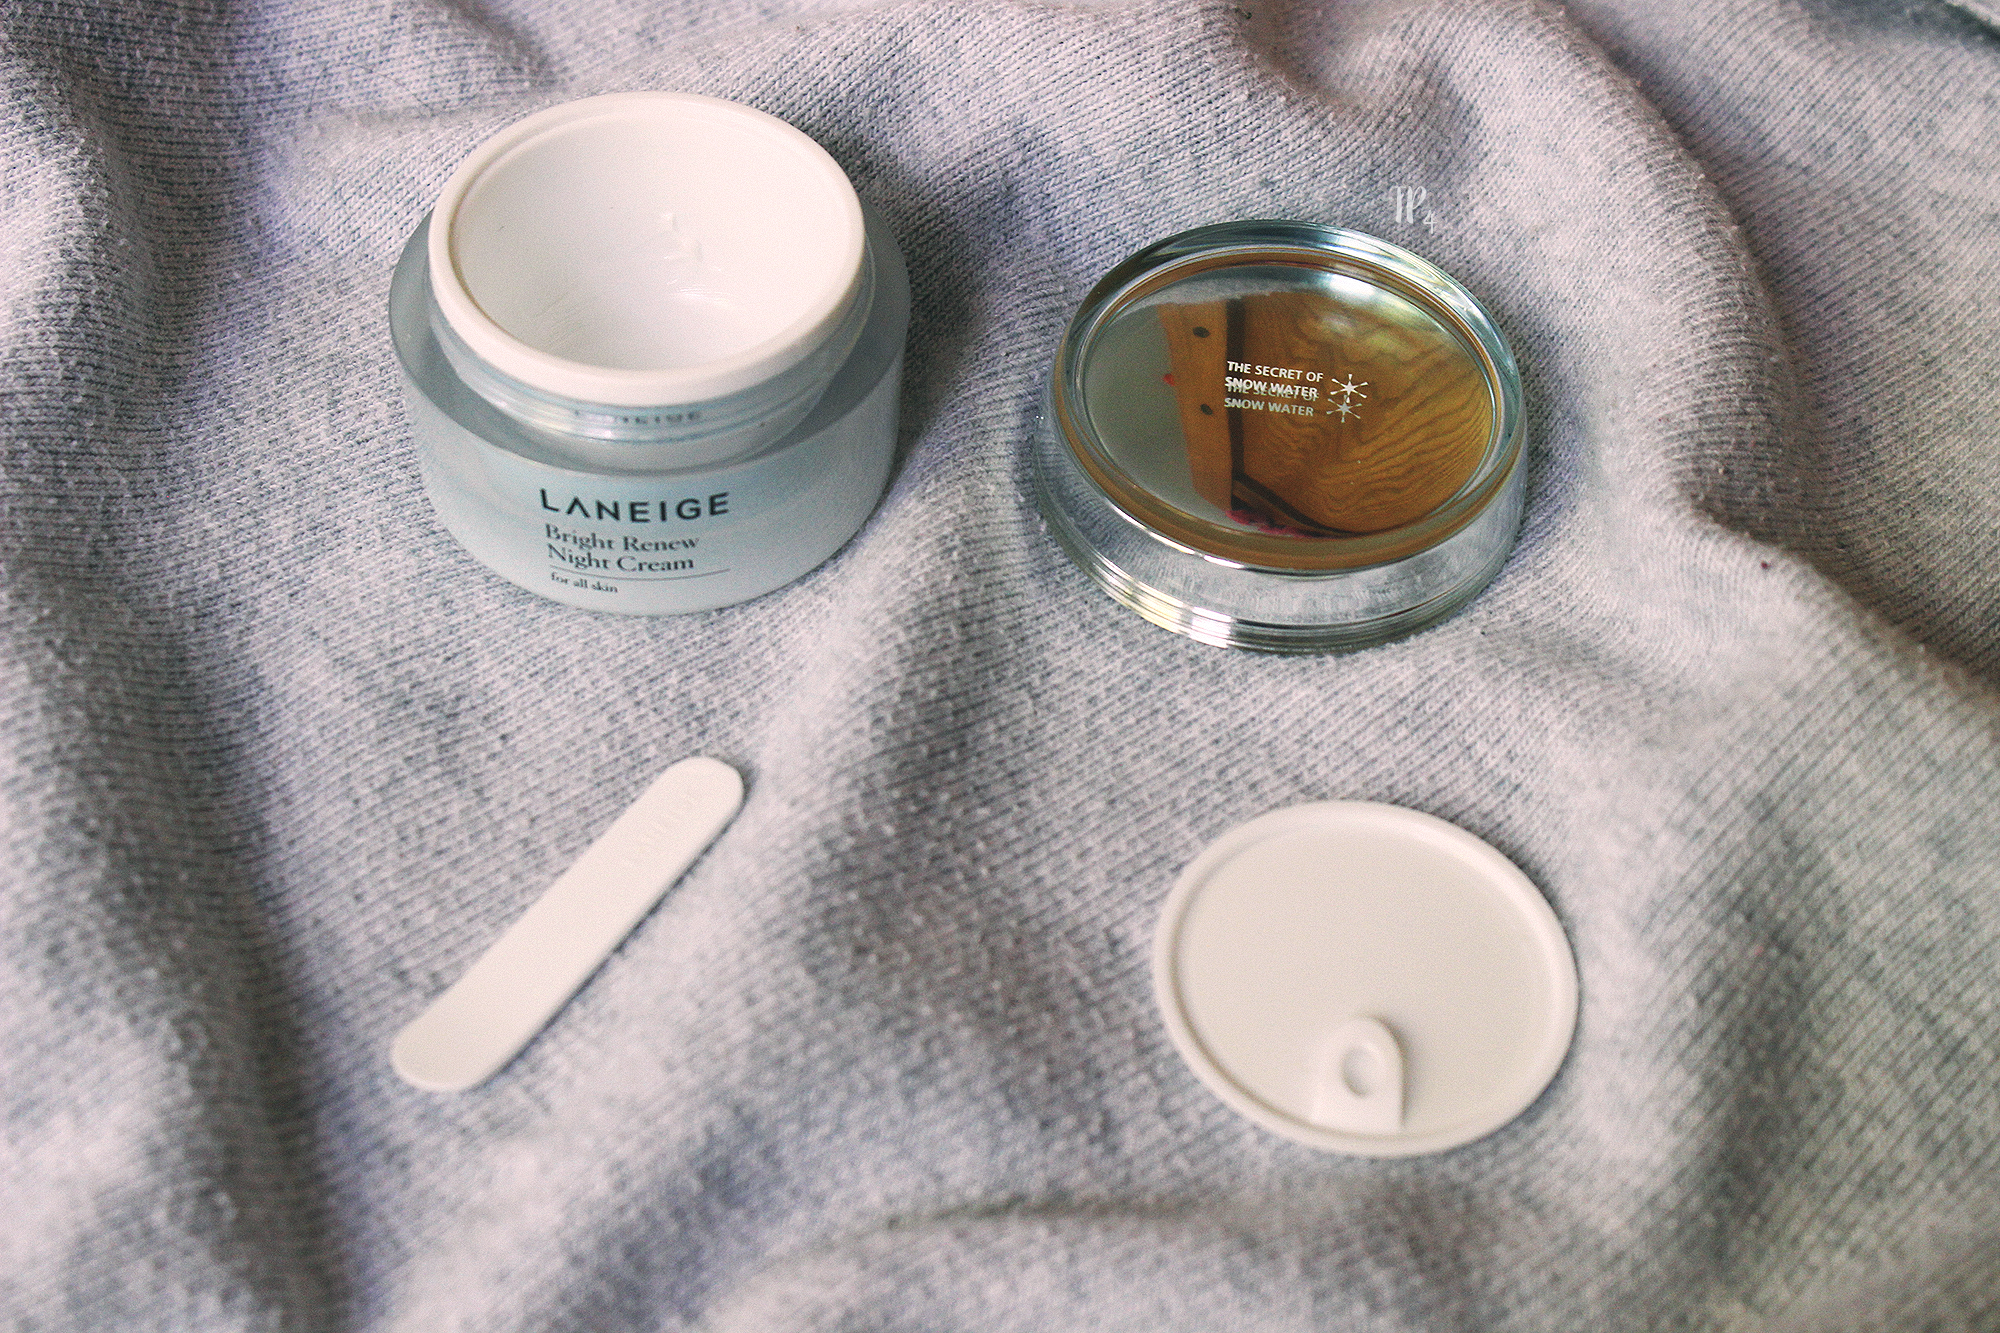 Laneige_Night_Cream_1